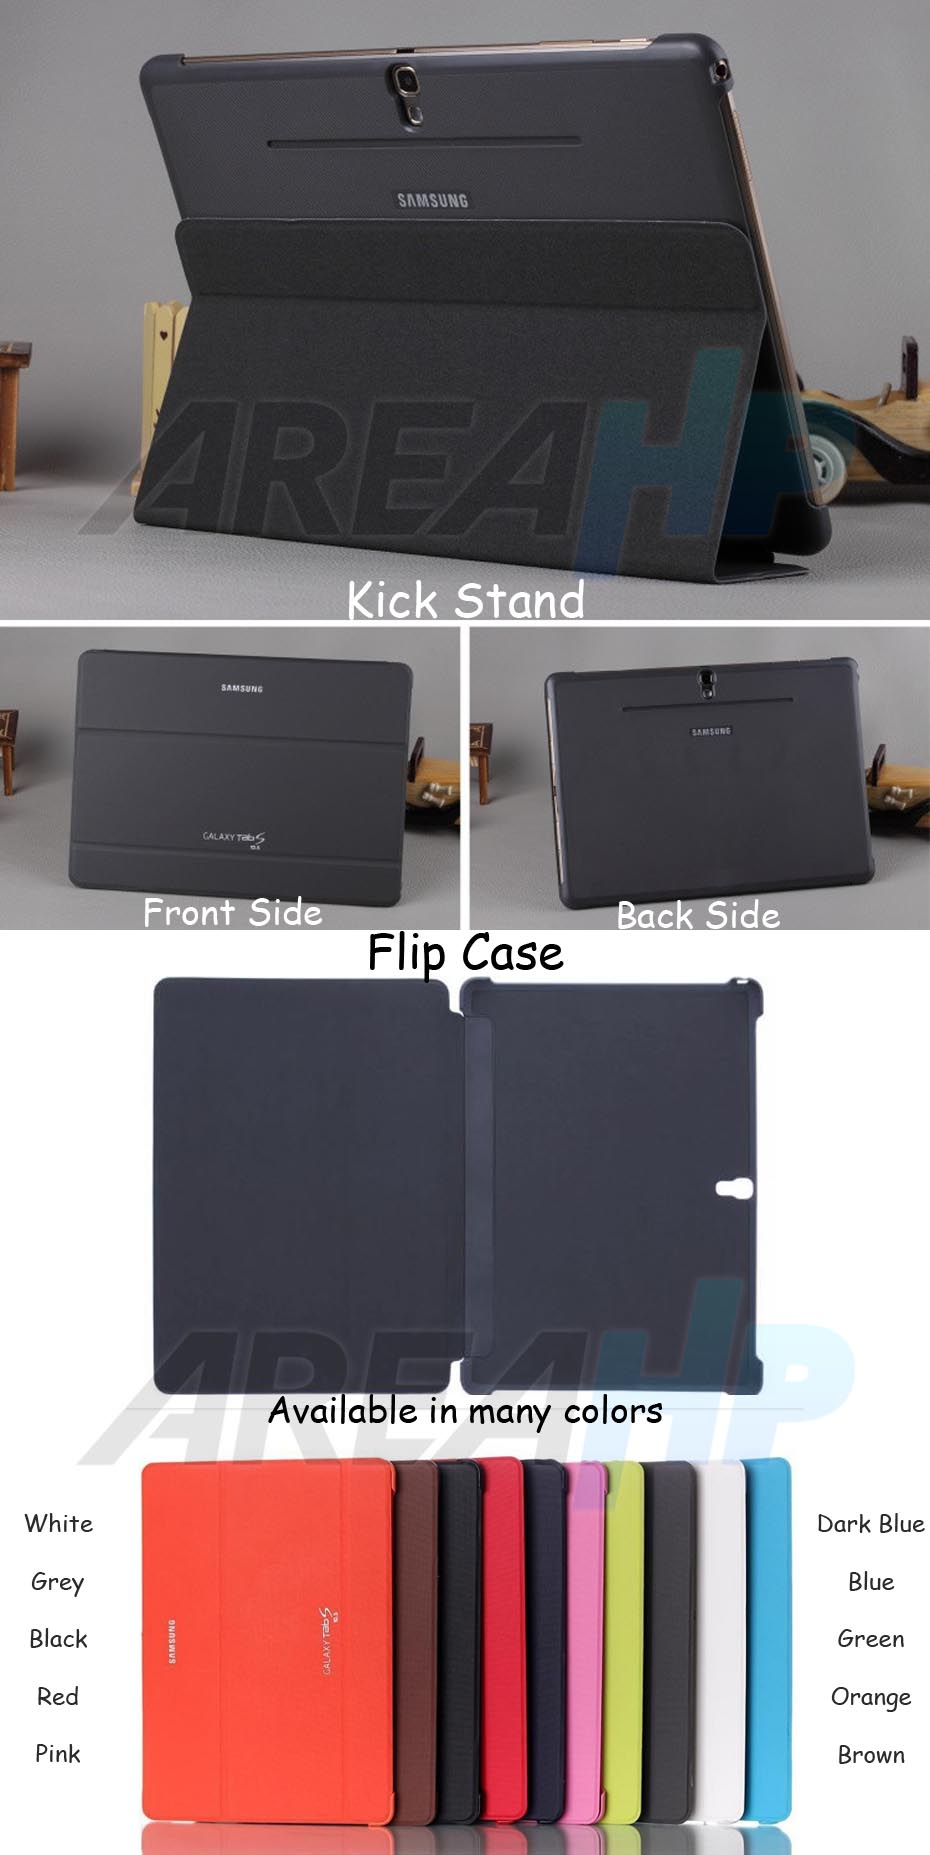 Book Cover Case for Samsung Galaxy Tab S 10.5 T800 Overview